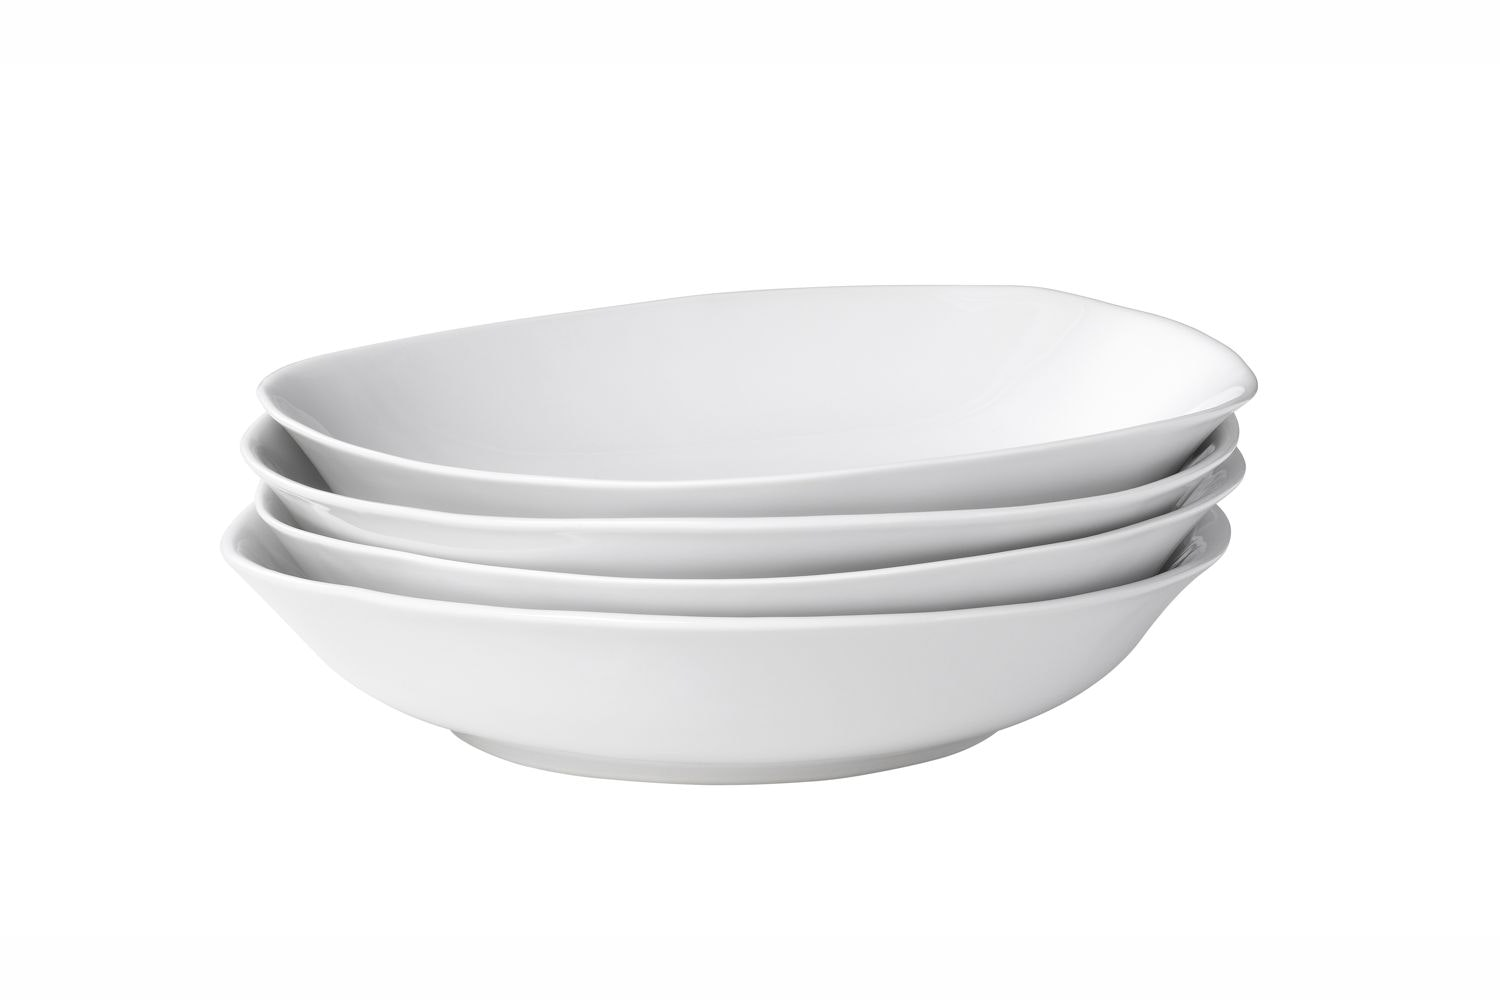 Large Famished Soup Plate by Tse & Tse